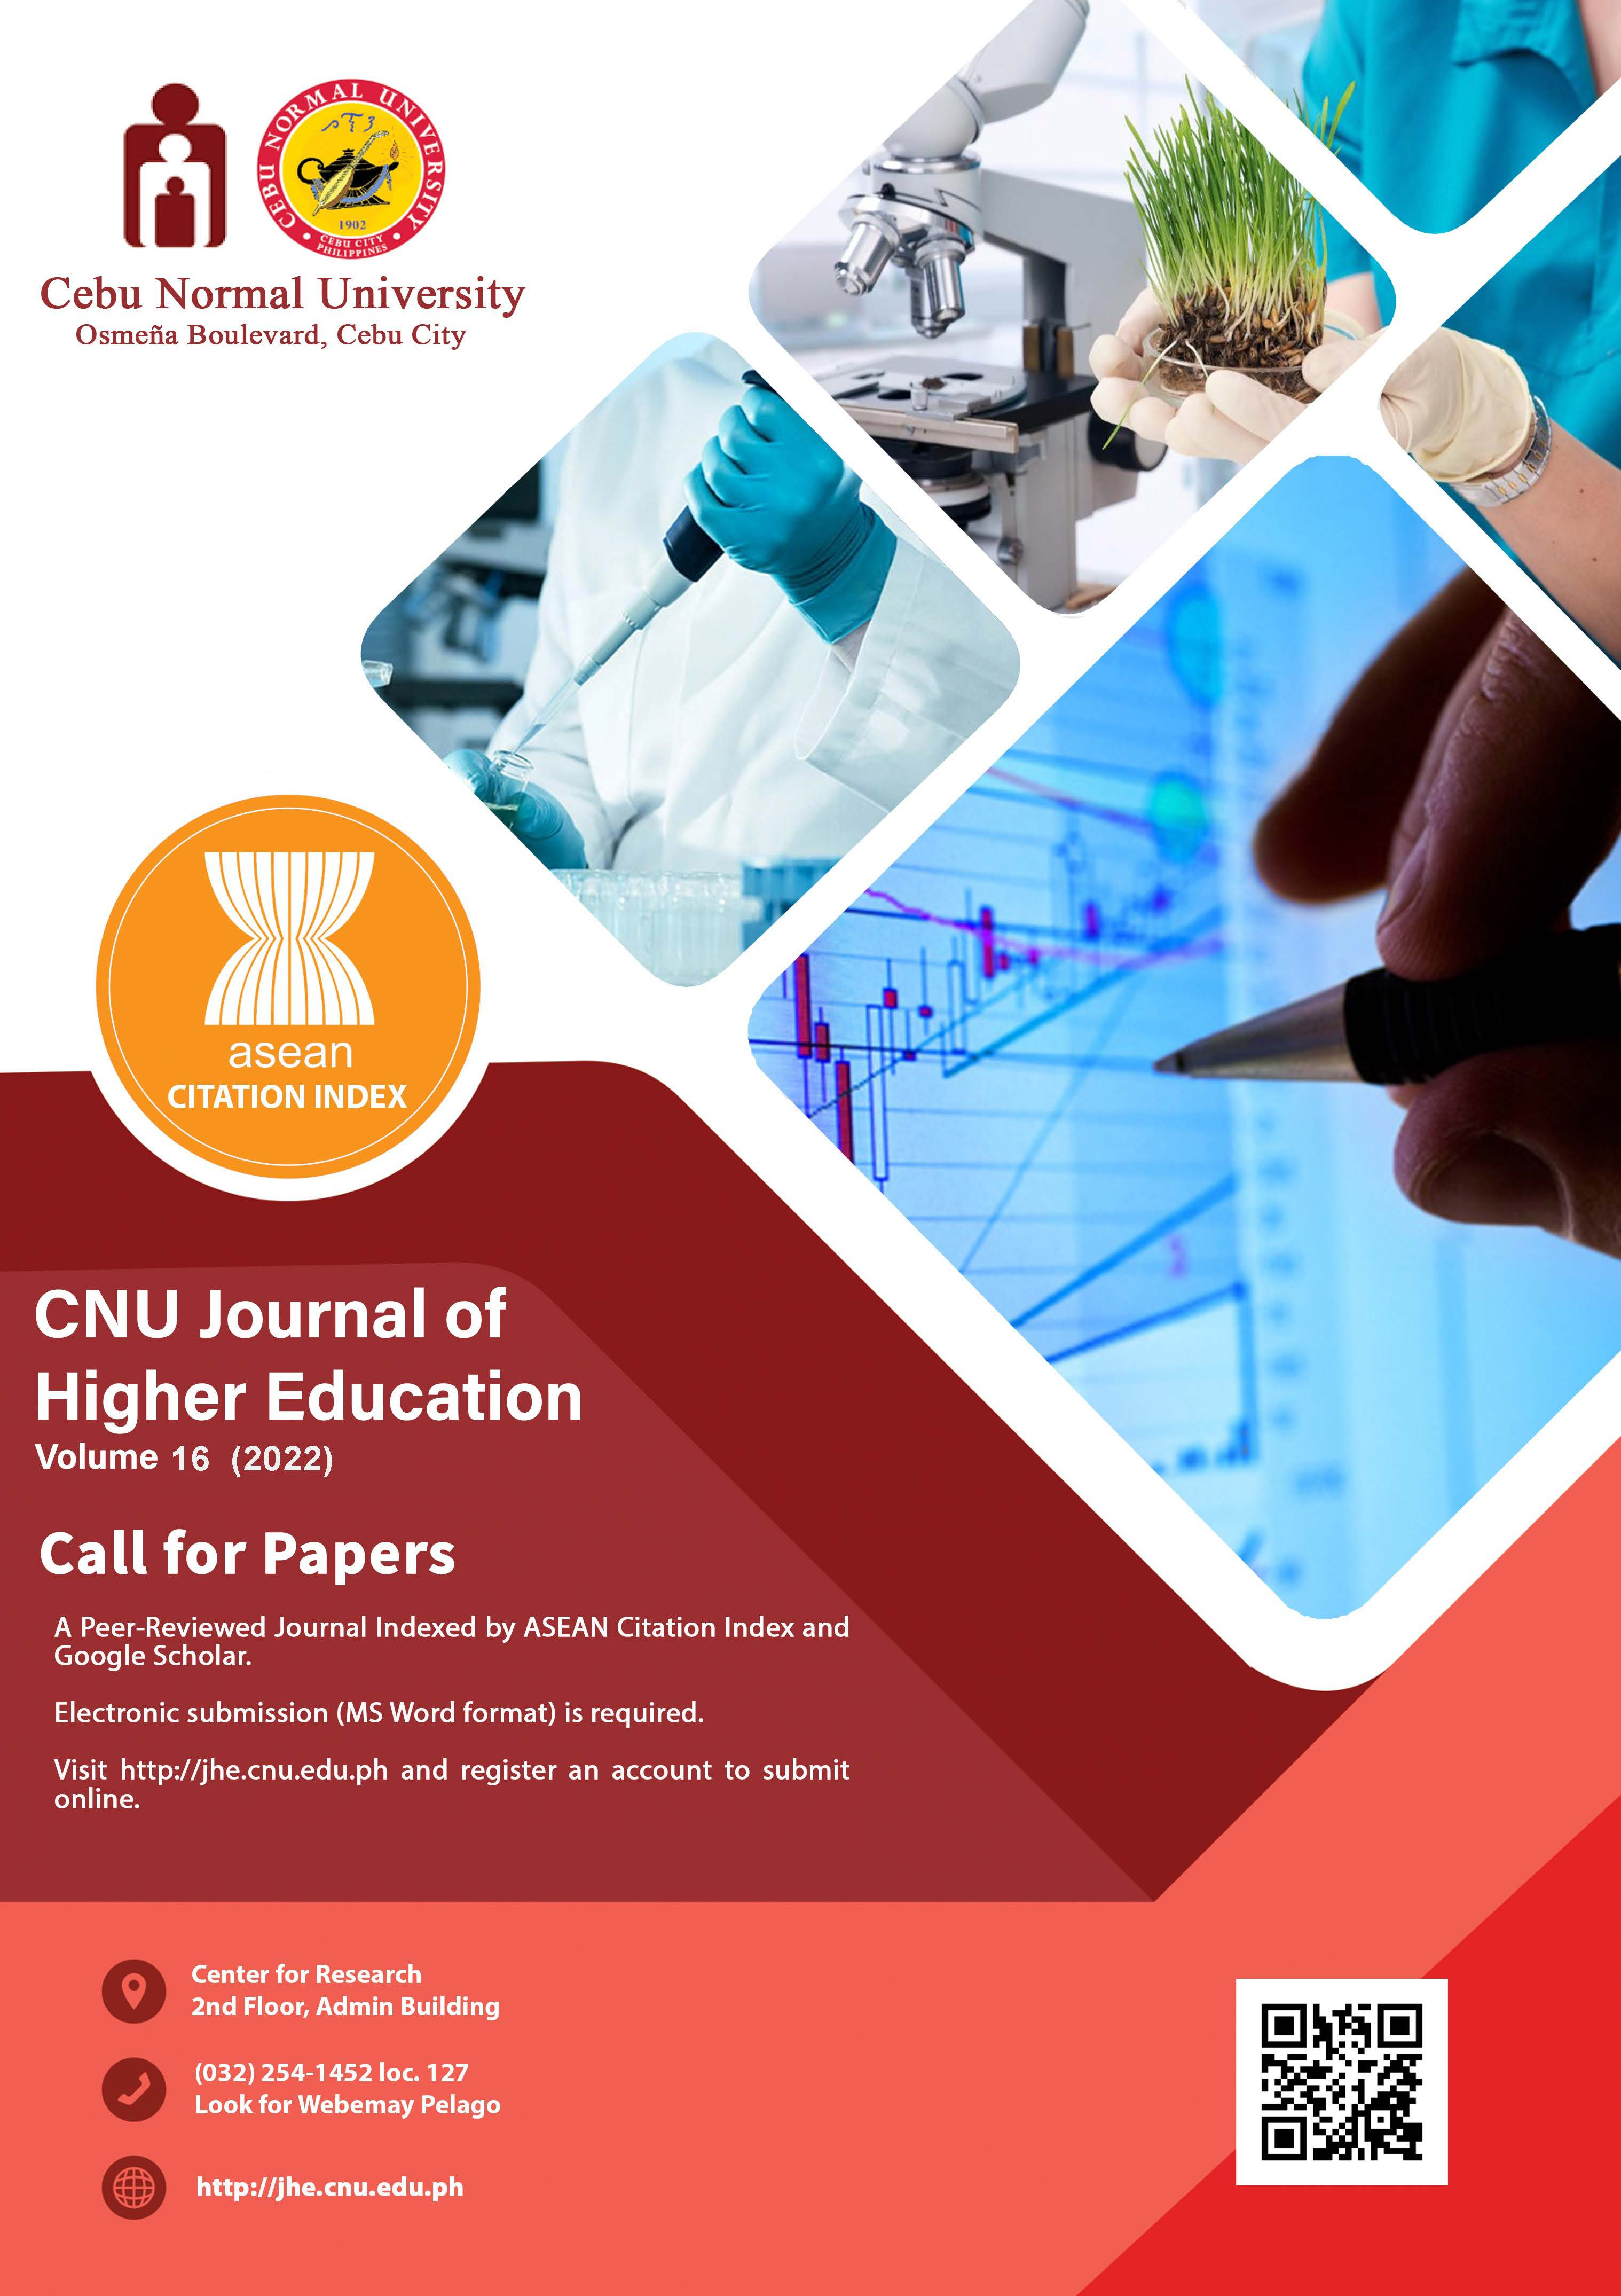 CNU-JHE CALL FOR PAPERS 2022